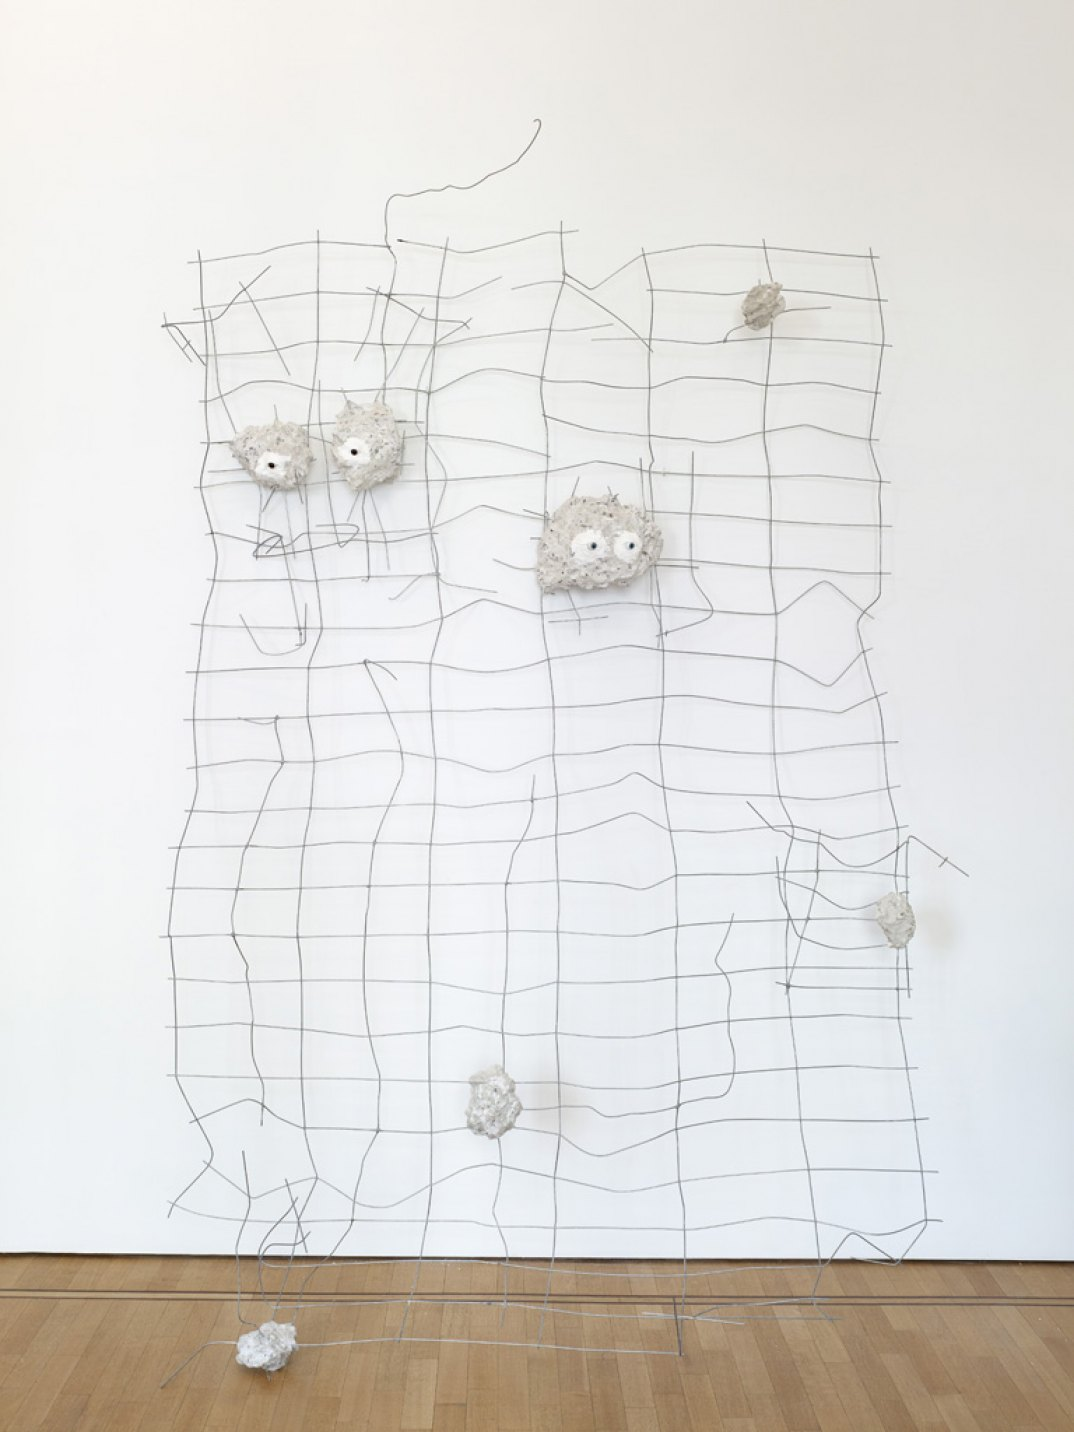 Giulio Delvè, <em>Failed any attempt to involve you as part of our crowd; Whatremains, therefore, keep an eye on you</em>, 2017, wire mesh, glass eyes, plaster, mortar, concrete, 255 × 175 × 20 cm - Mendes Wood DM